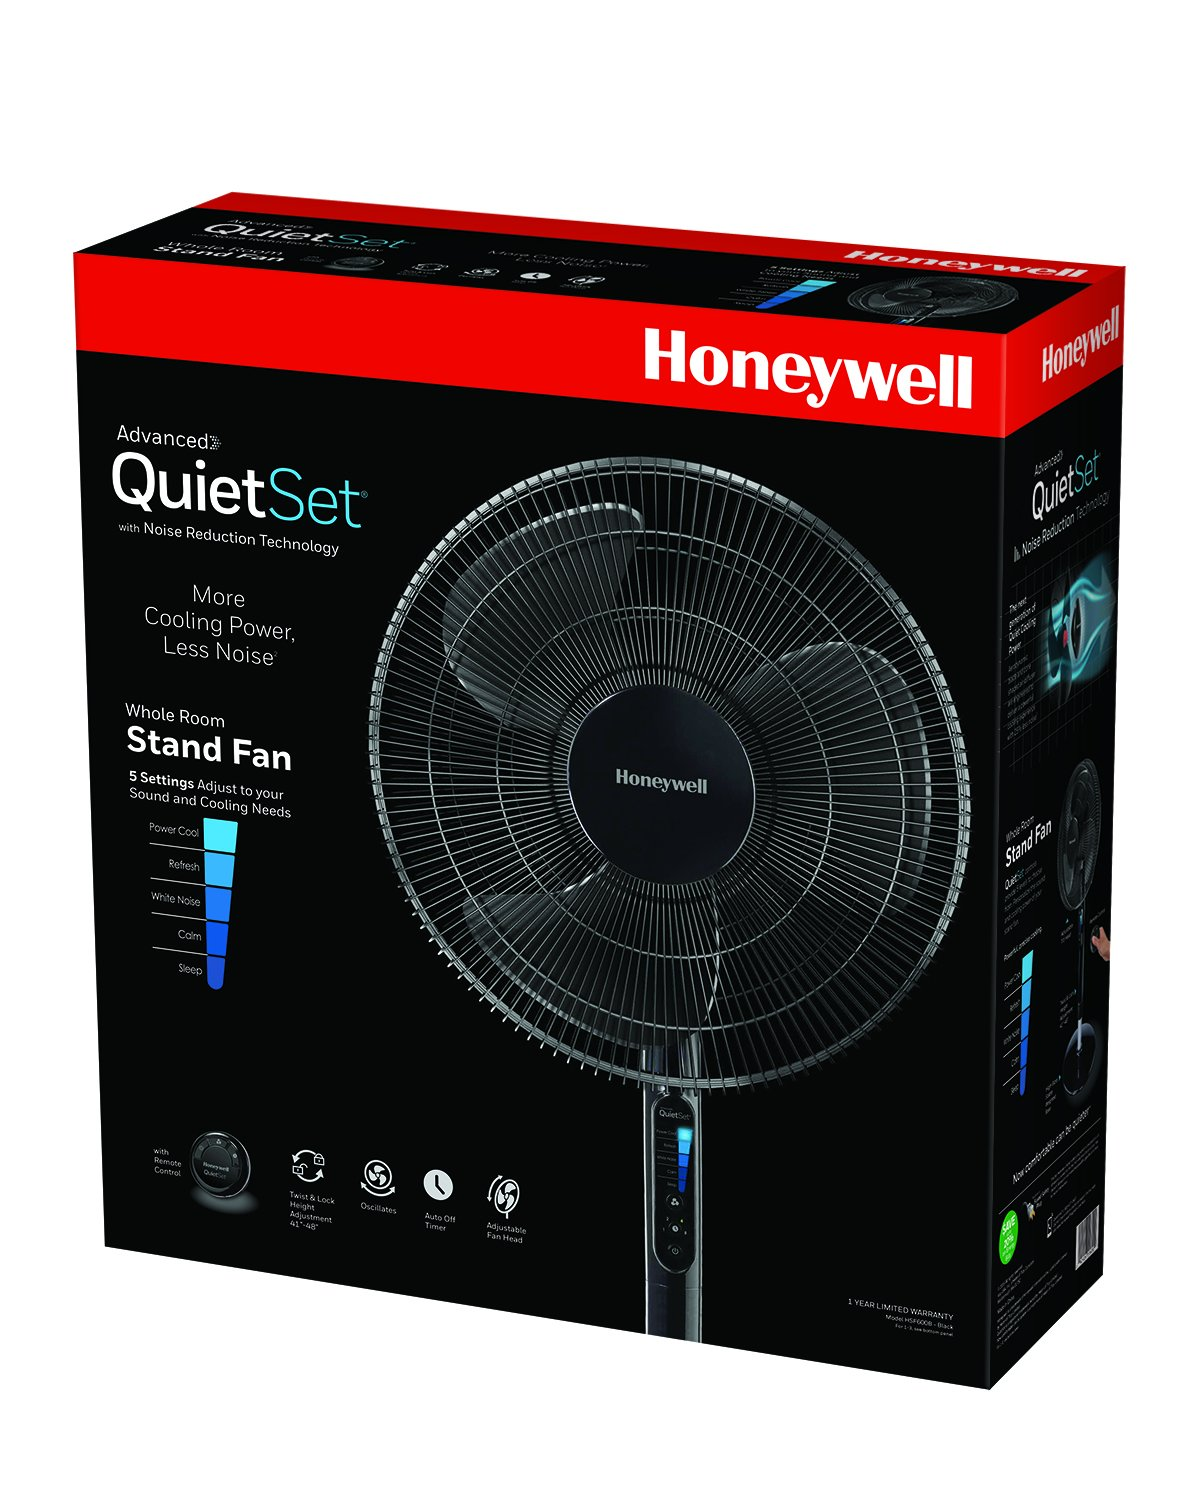 Honeywell Advanced QuietSet with Noise Reduction Technology 16 Whole Room Pedestal Fan HSF600B